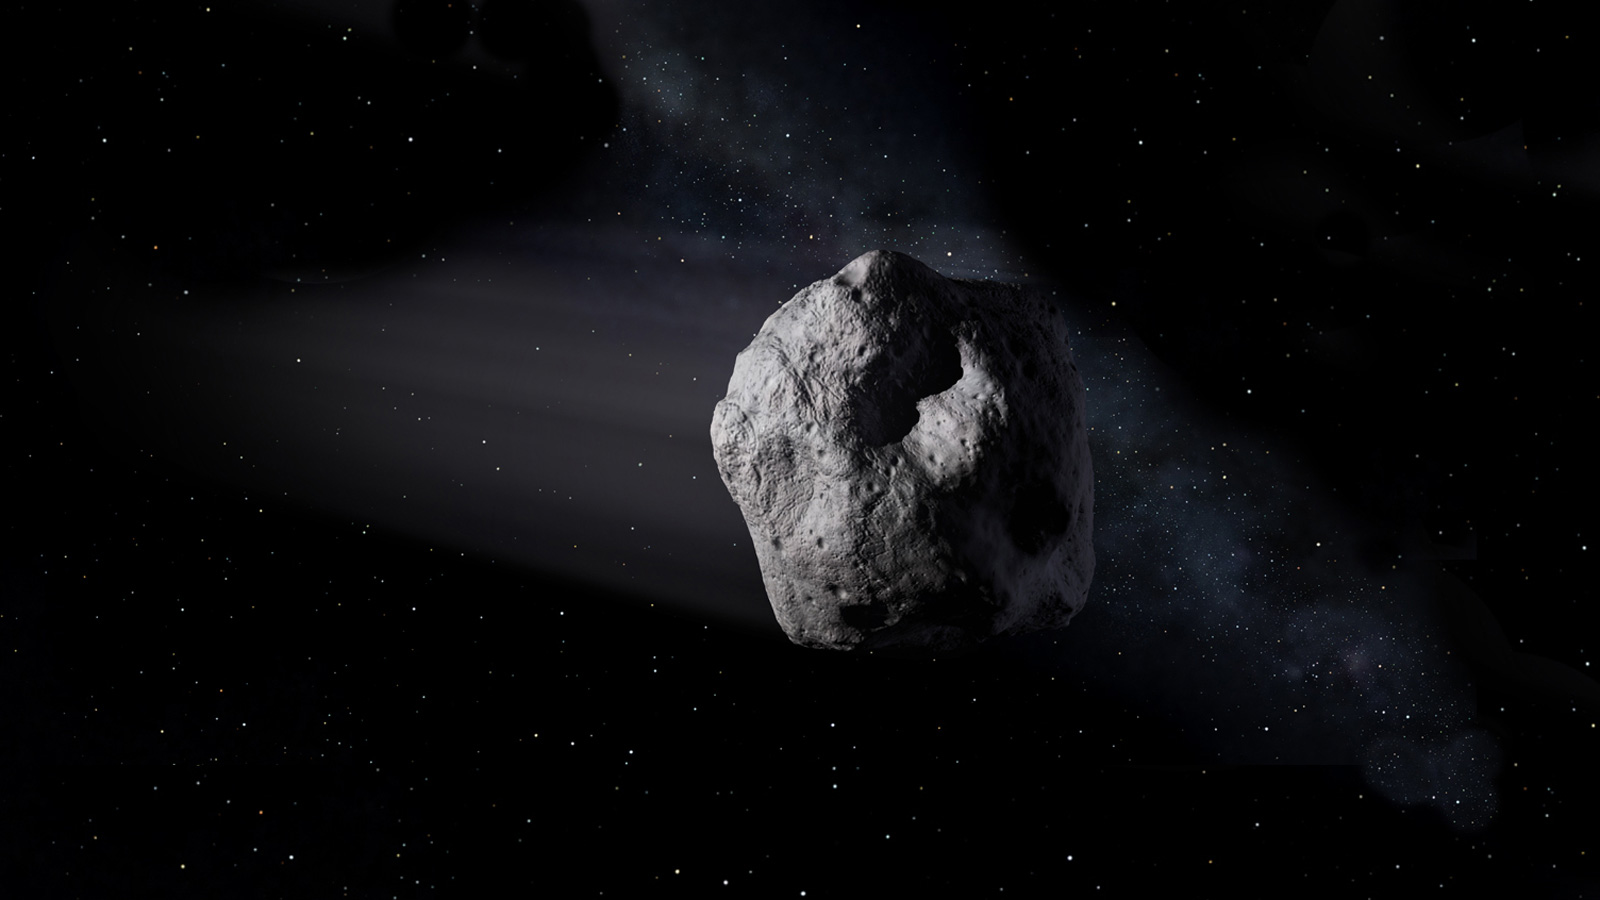 Asteroids are discovered by amateur astronomers through a citizen science project.